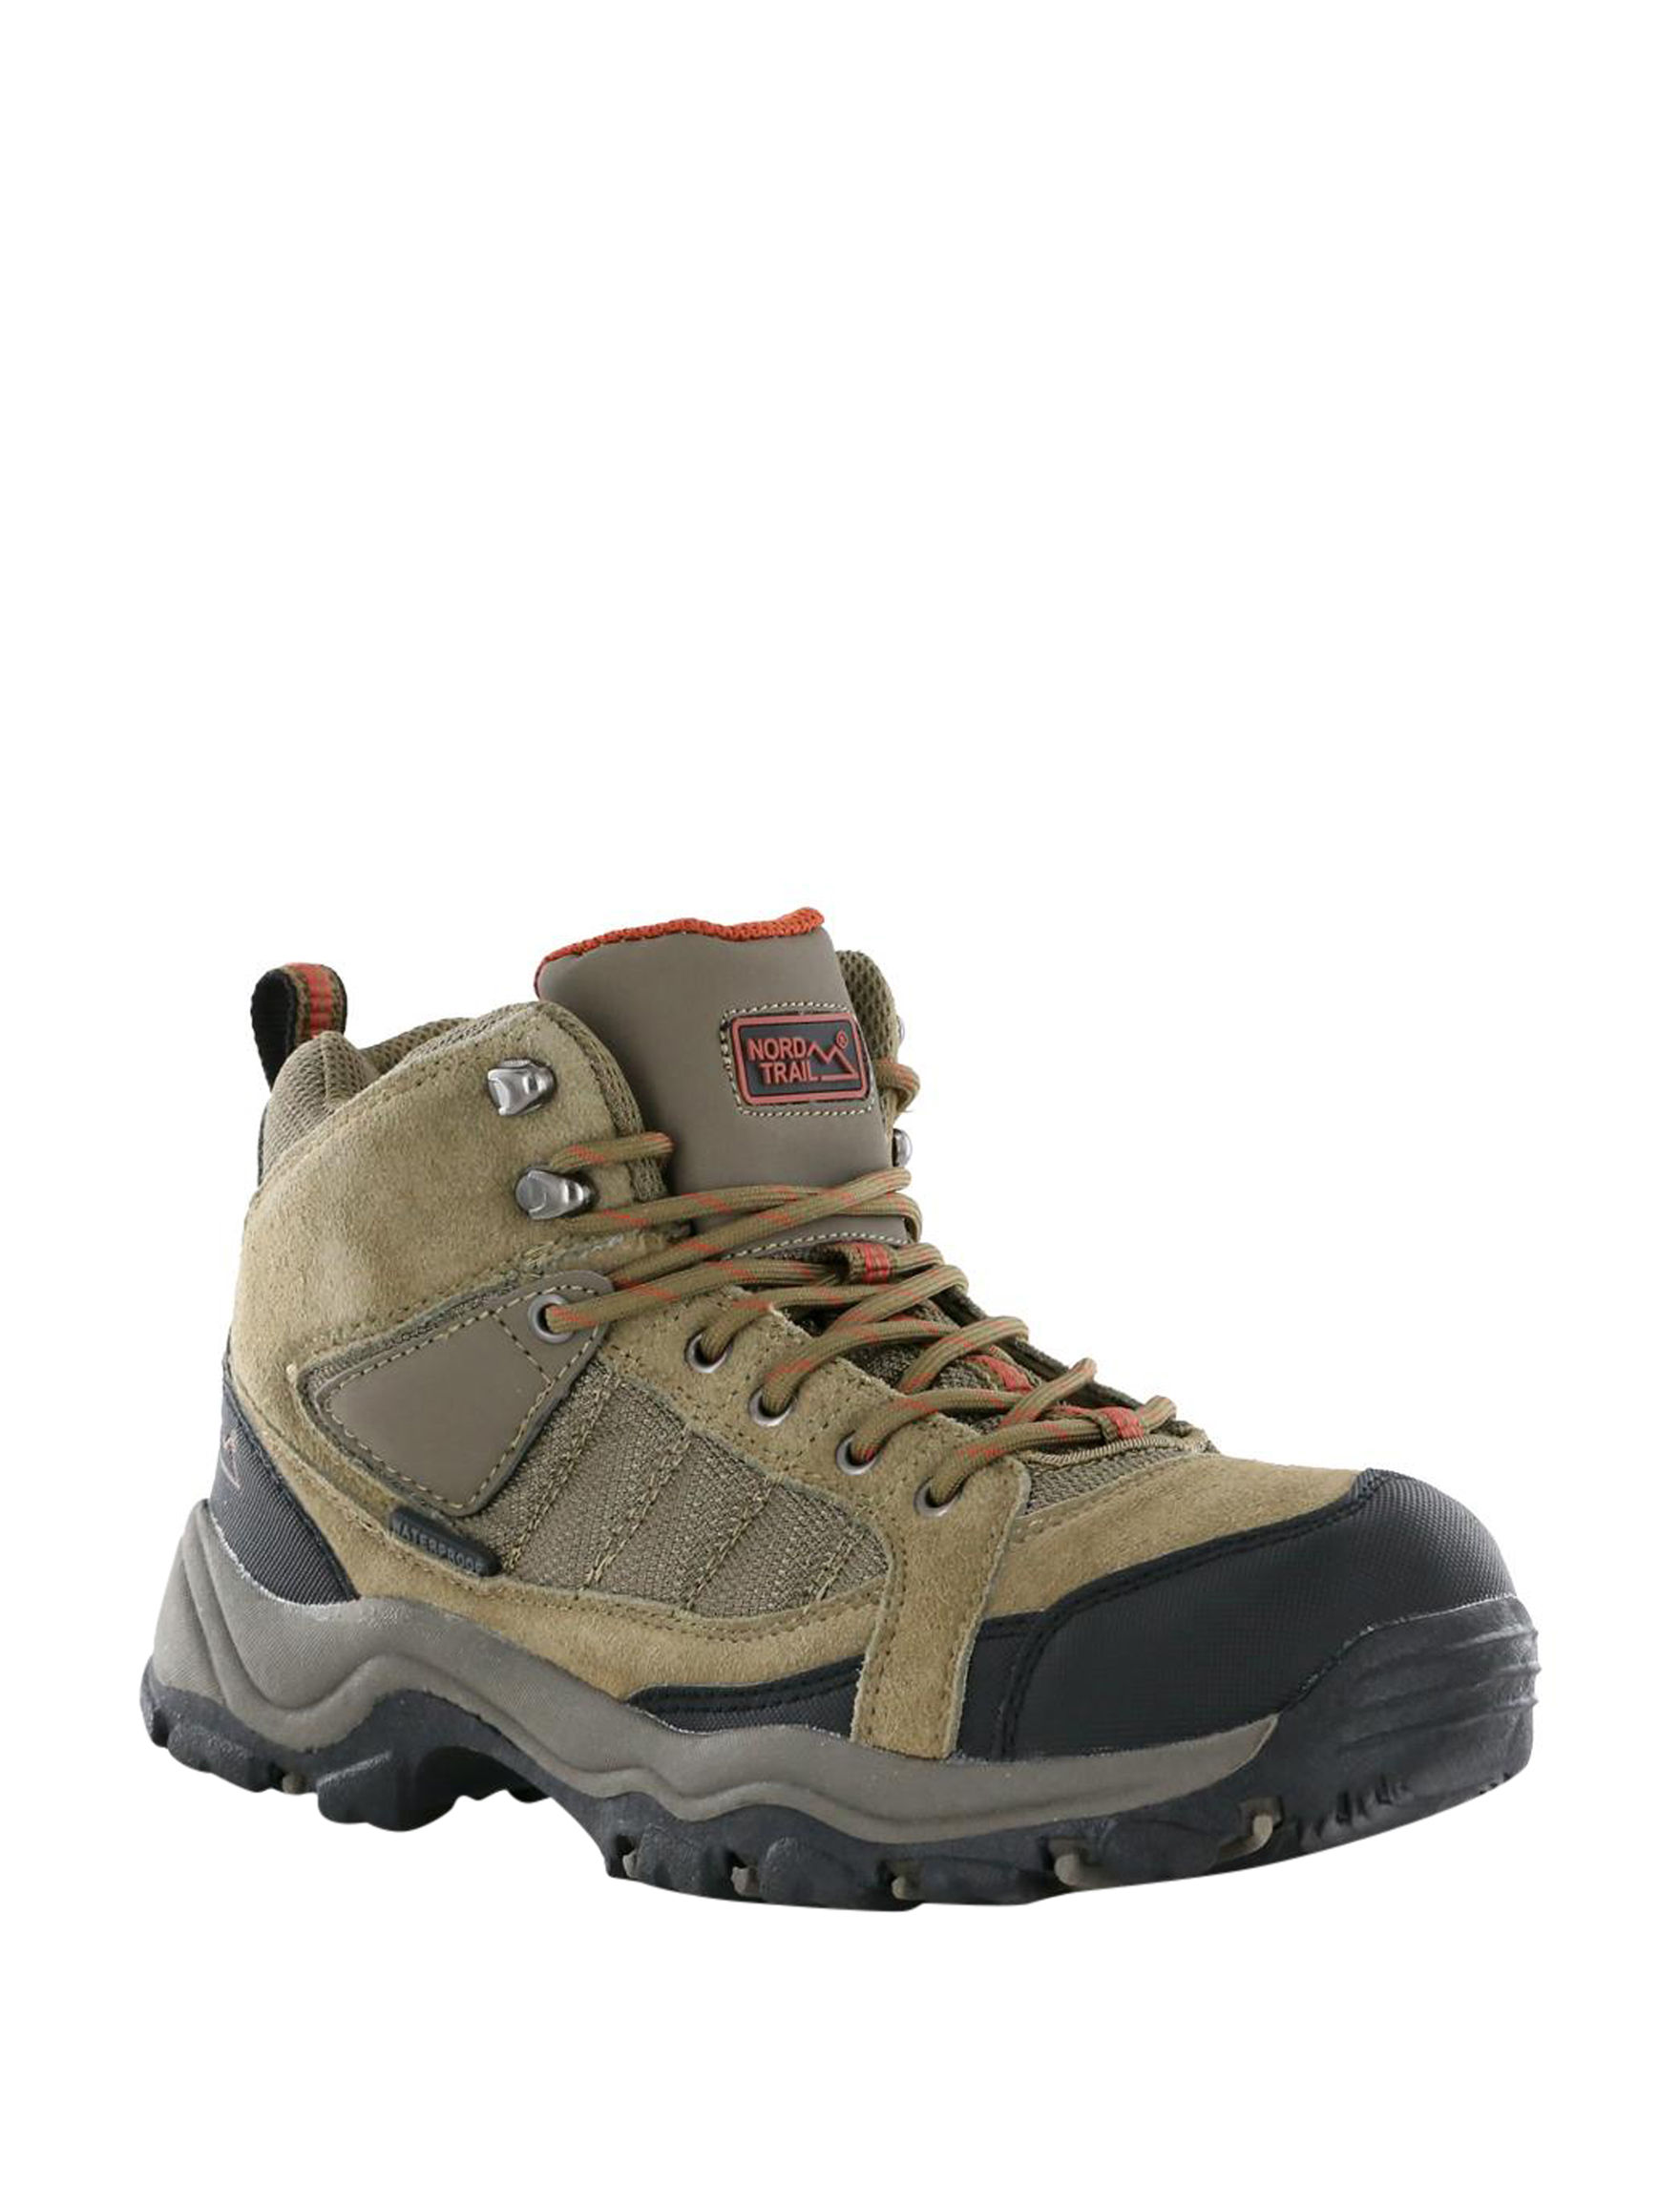 Nord Trail Brown Hiking Boots Waterproof